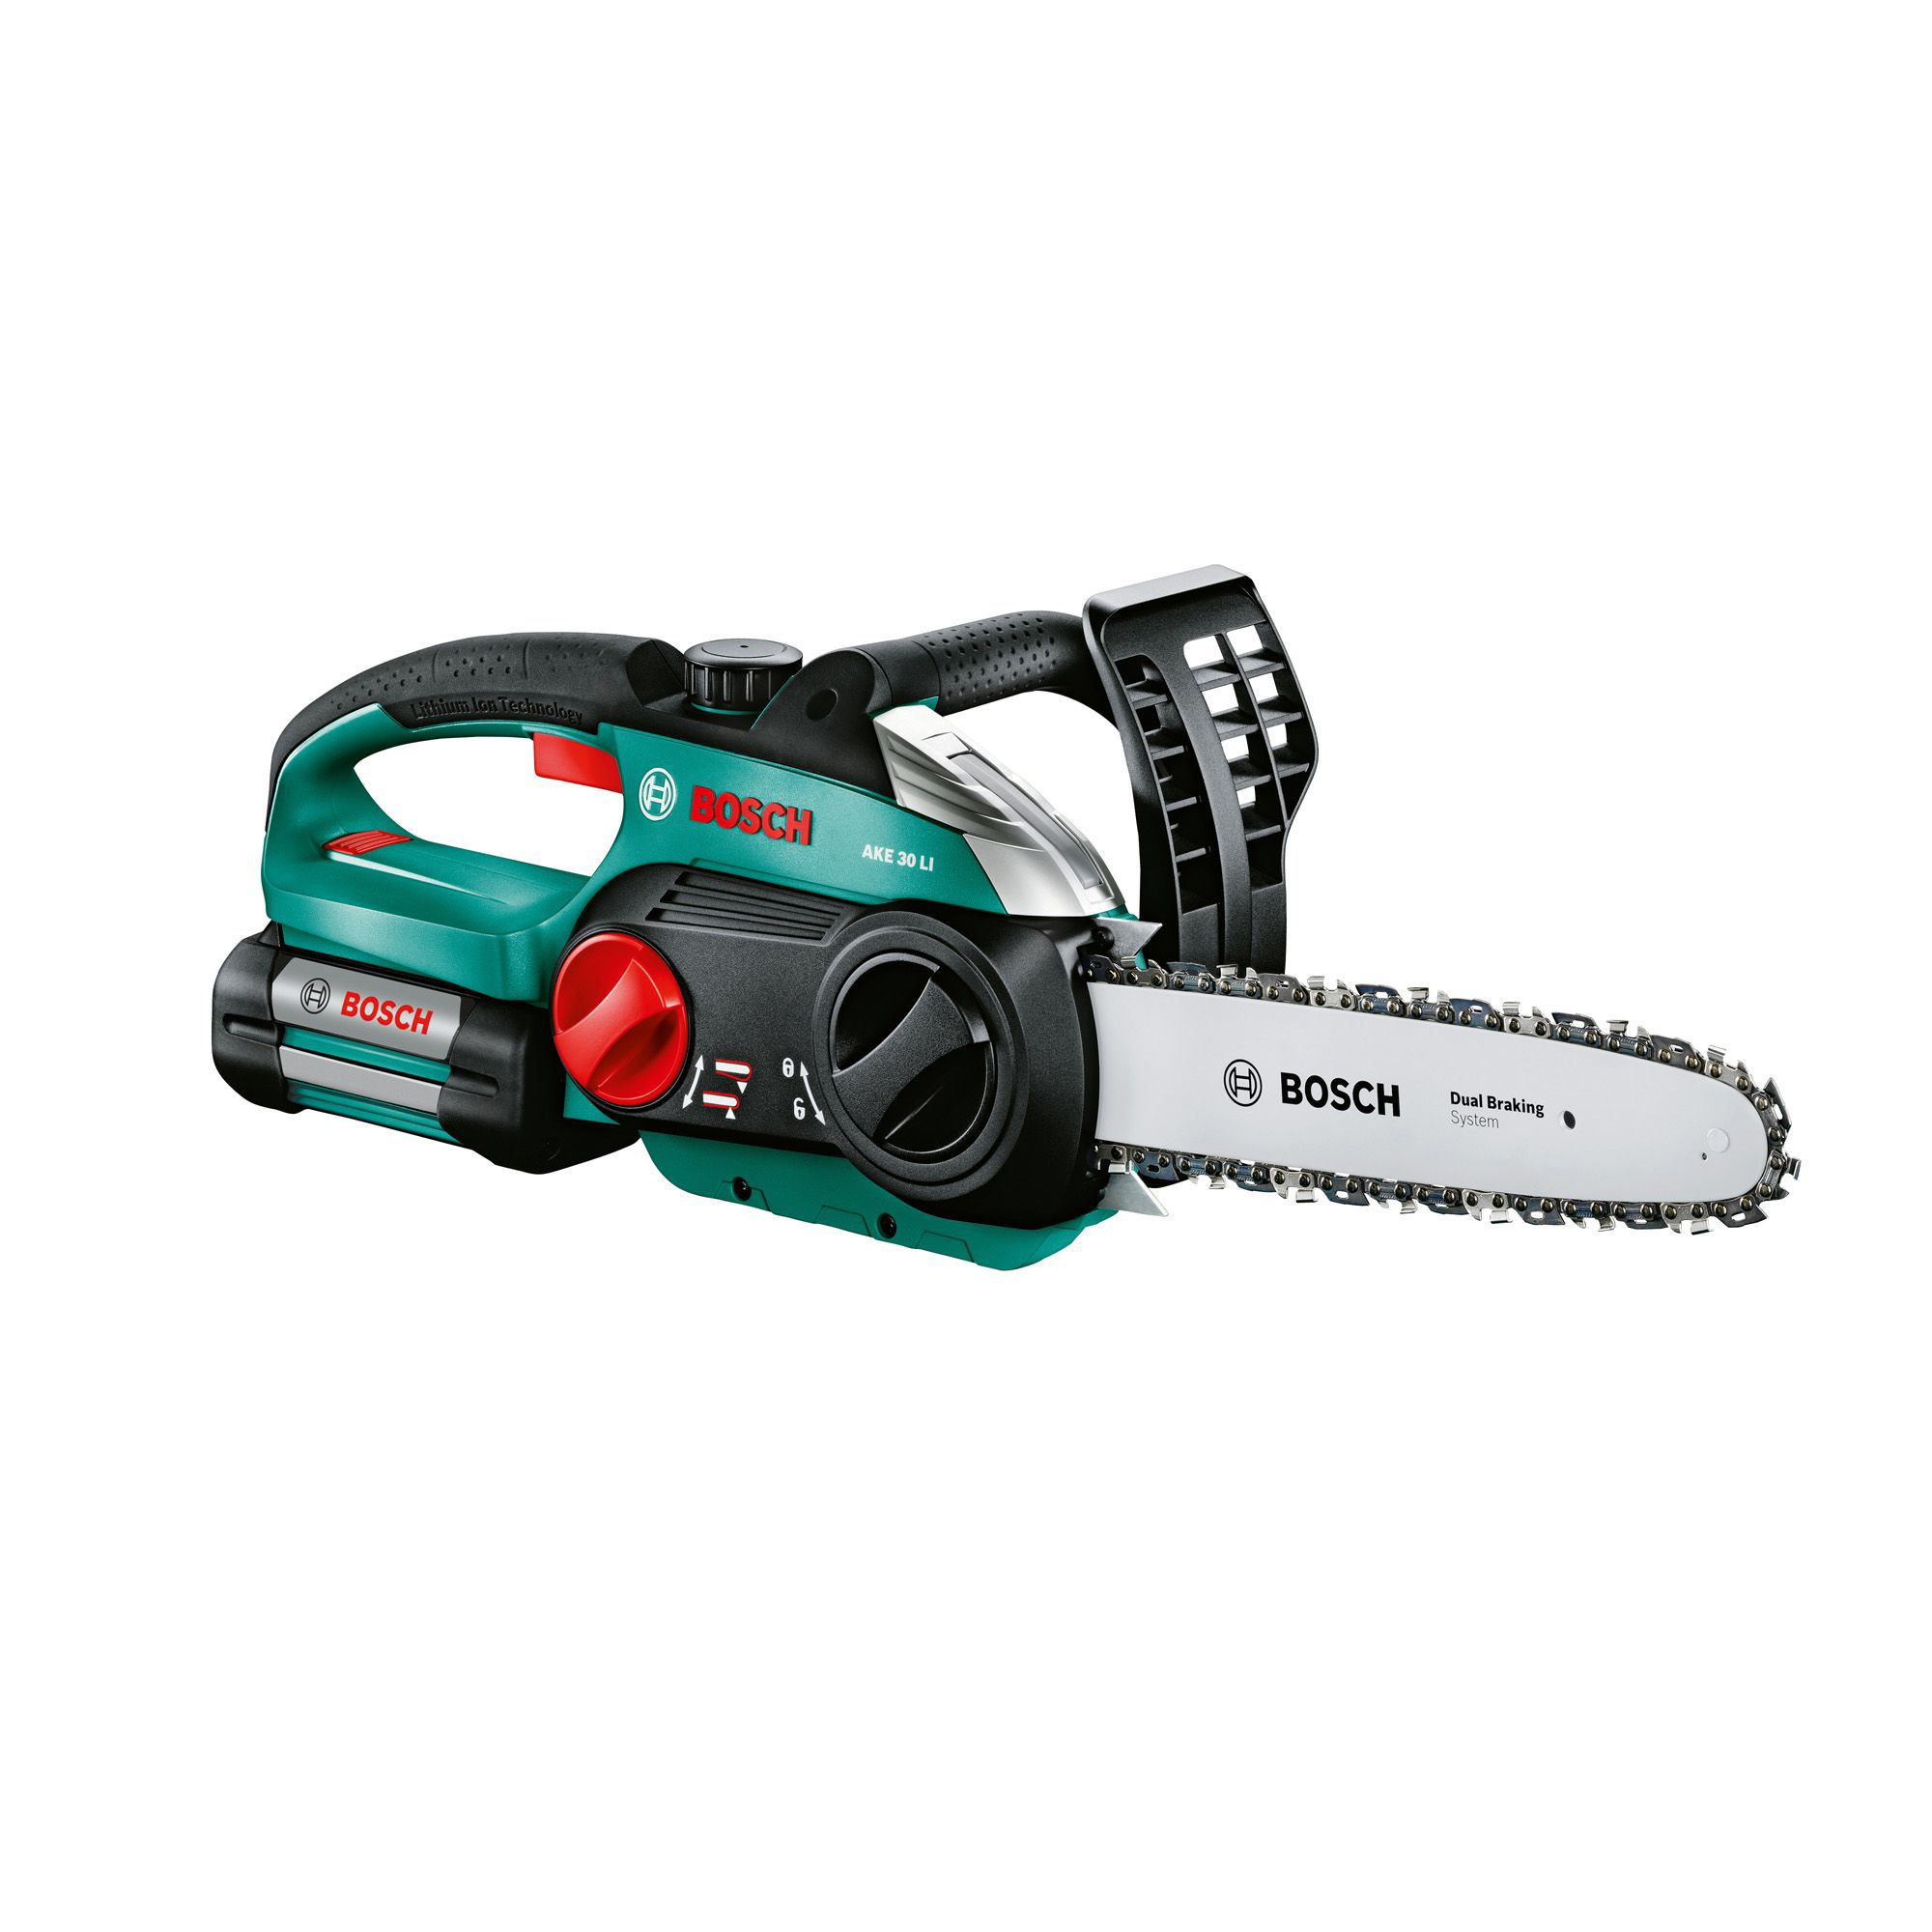 Bosch Ake 30 Li Cordless Lithium-ion Electric Chainsaw